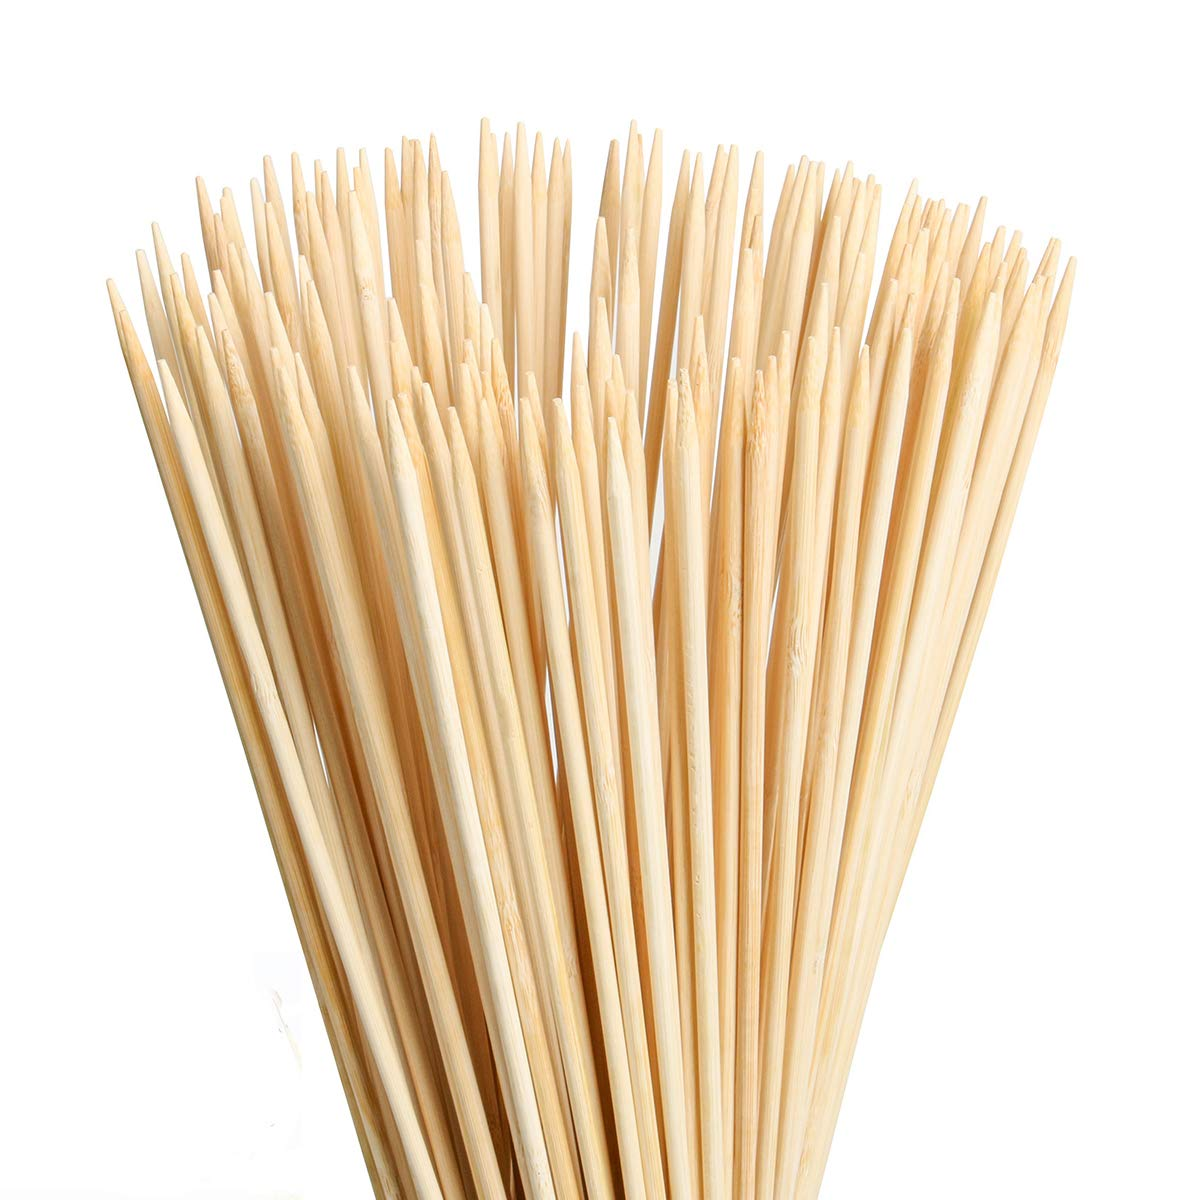 Beyonder Bamboo Marshmallow Roasting Sticks with 30 Inch 5mm Thick Extra Long Heavy Duty Wooden Skewers, Roaster Barbecue Smores Skewers & Hot Dog Forks for Camping , Party, Kebab Sausage (40 Pcs) BY-202